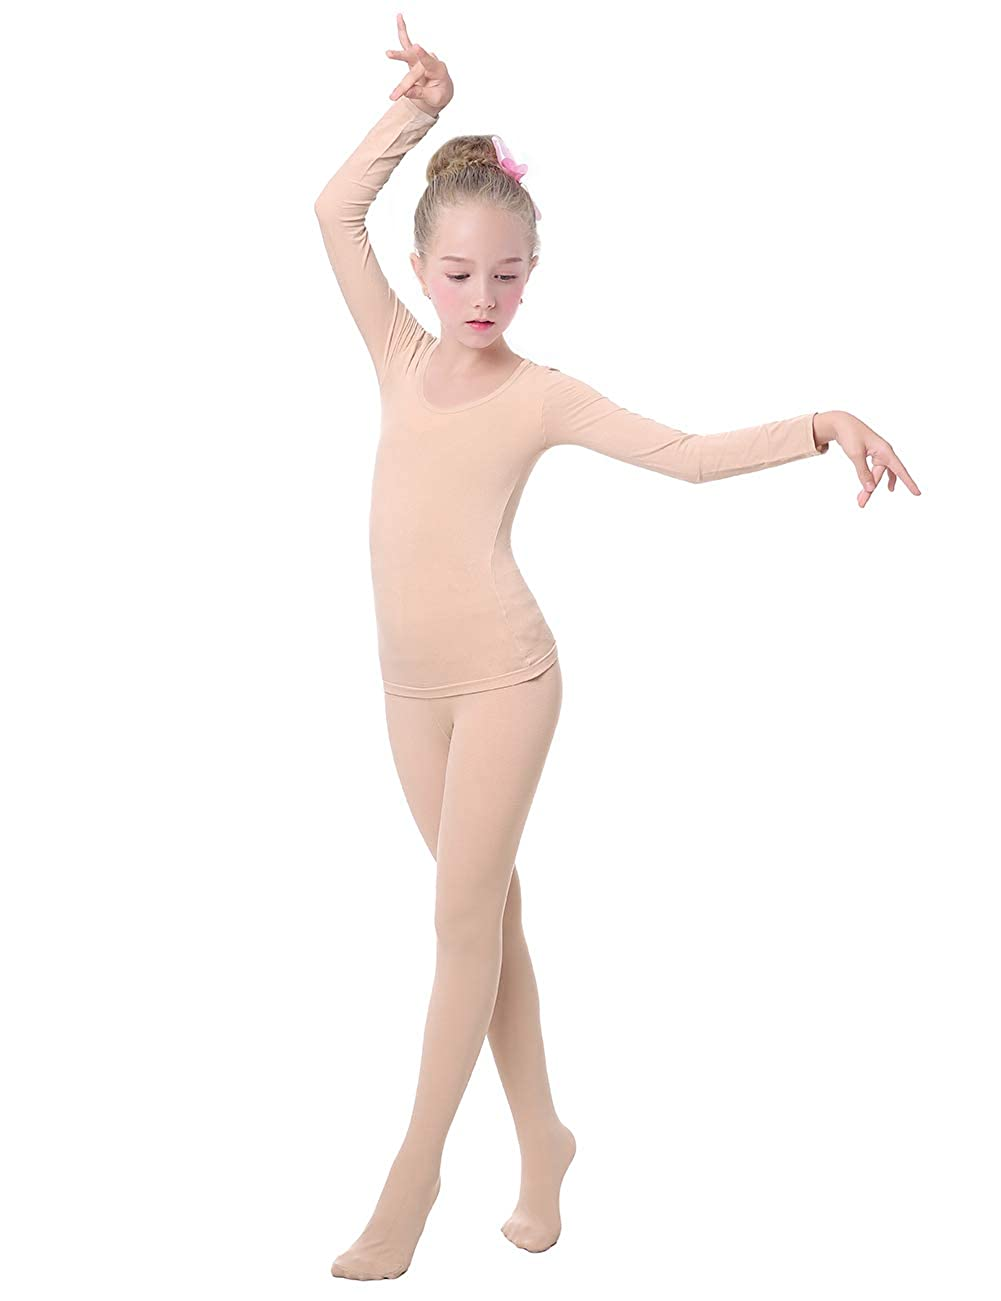 Kids Thermal Underwear Tops & Pants Sets Girls Nude Color Base Layer Suits for Dance